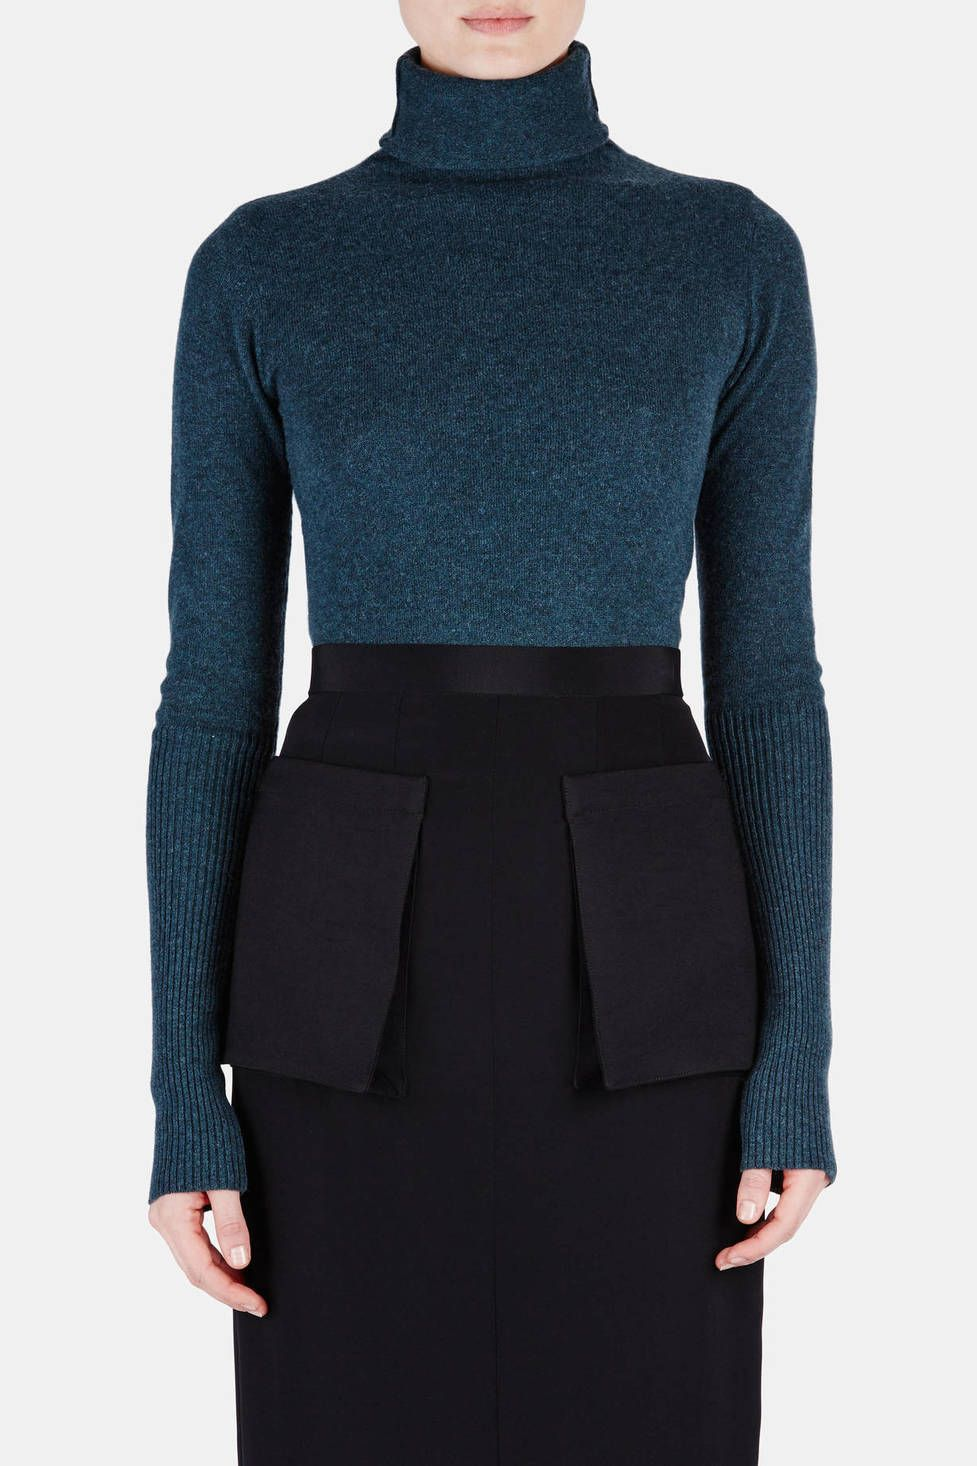 Protagonist — Sweater 08 Turtleneck Sweater With Extended Cuff Dusky Green/Blue and Skirt — THE LINE